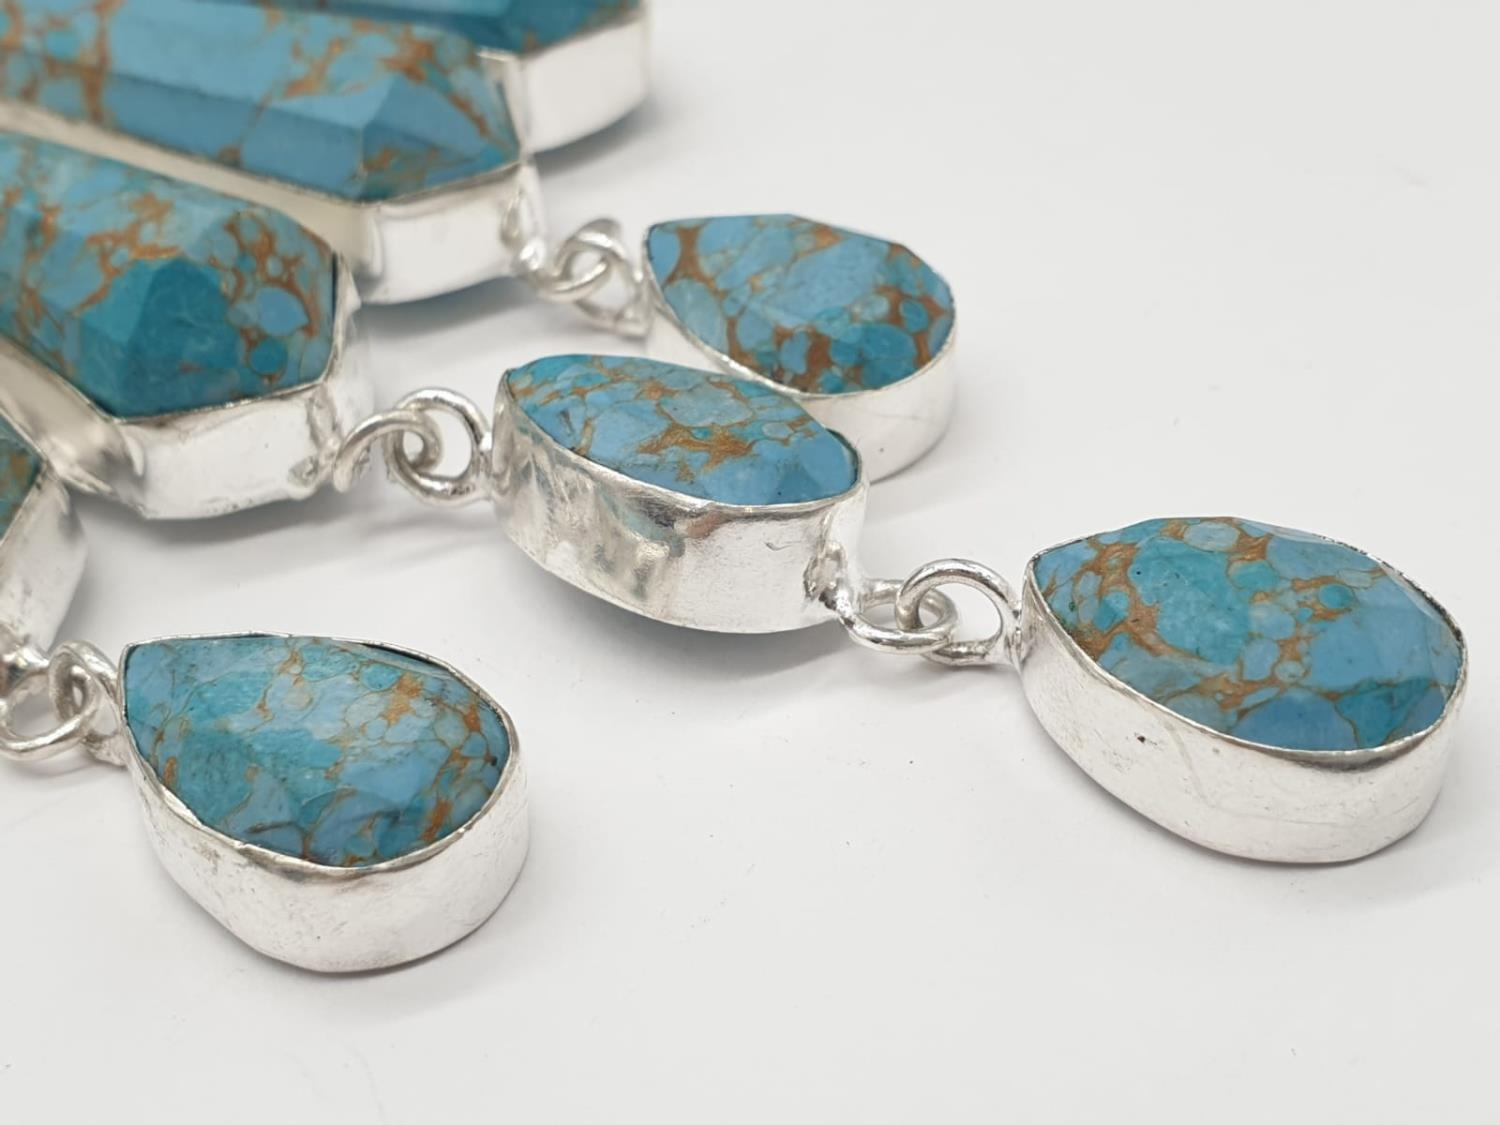 A Pharaonic style necklace and earrings set with light brown-gold veined turquoise obelisks and - Image 9 of 24